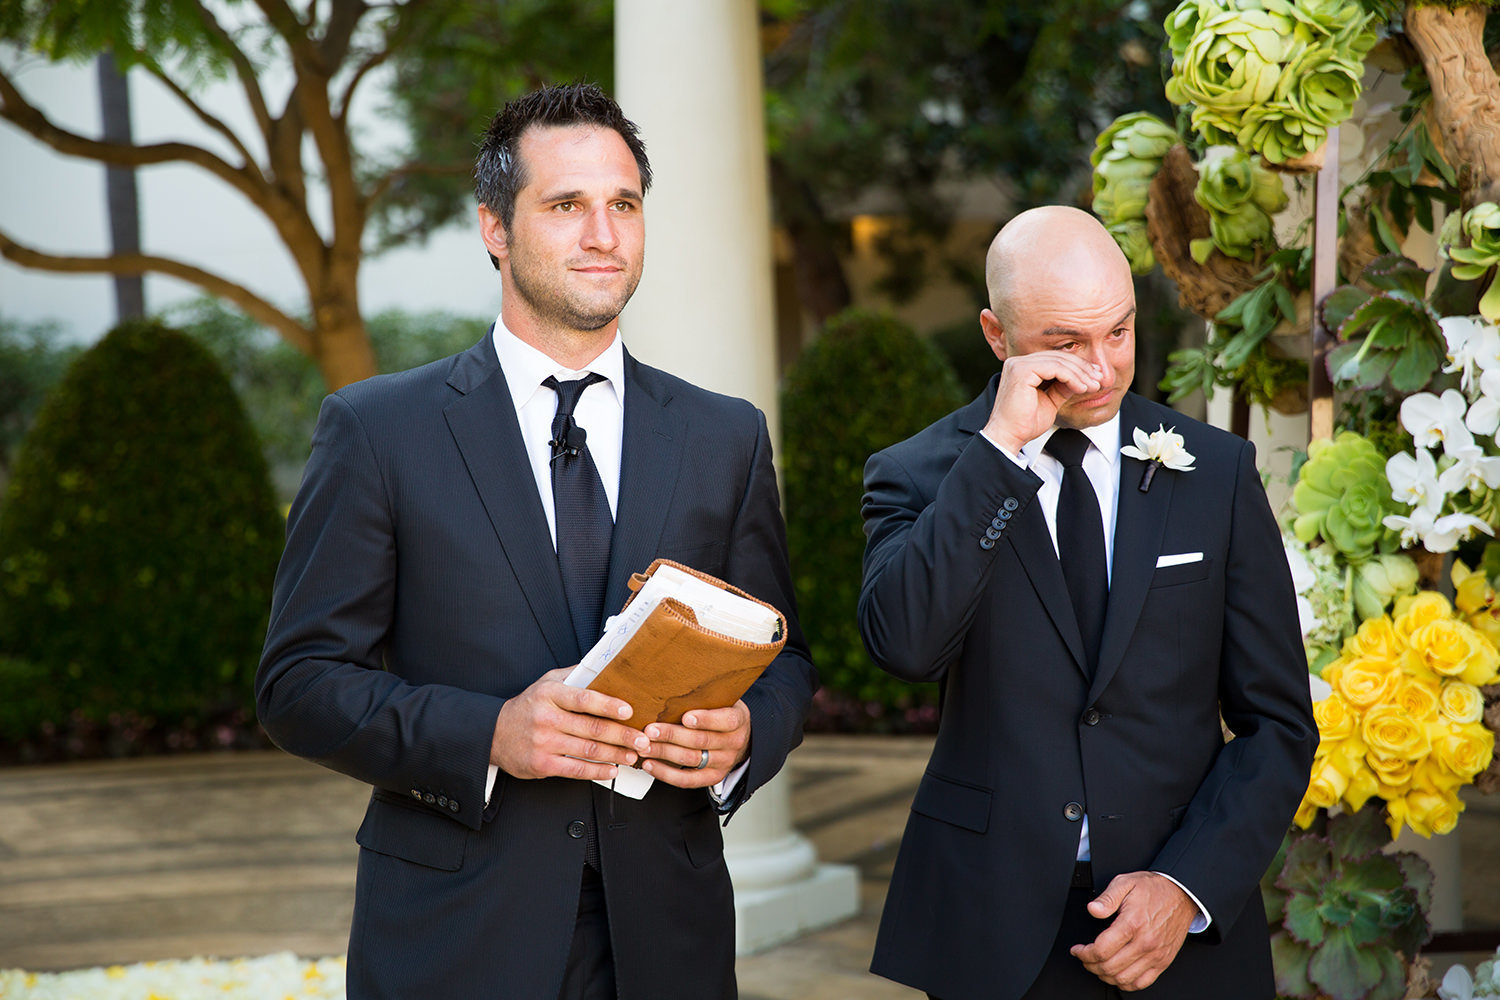 The groom's emotions begin to show when he sees his bride for the first time